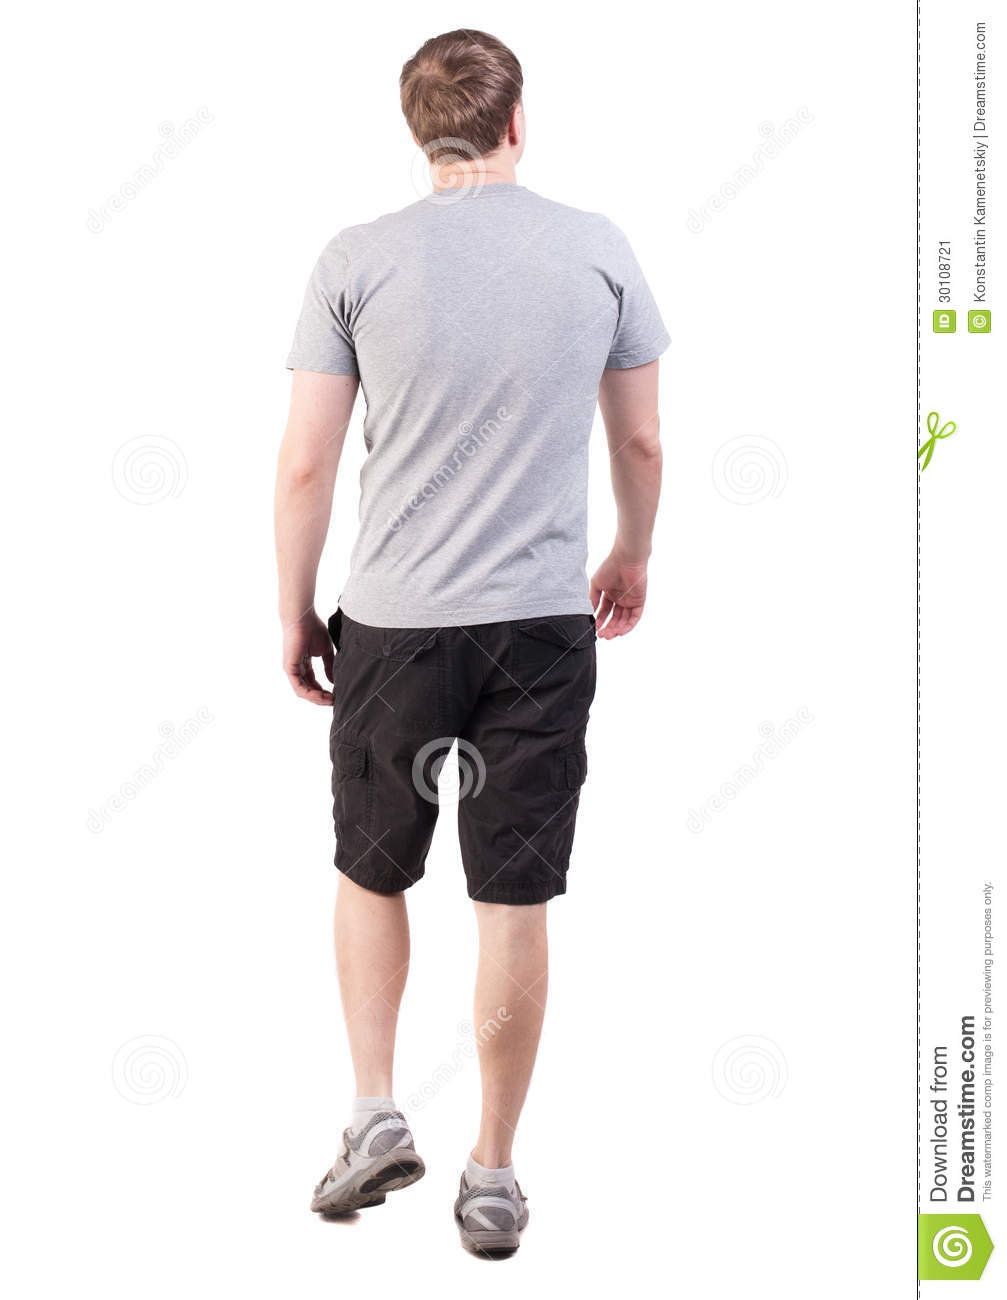 ... Handsome Man In Shorts And Sneakers Stock Image - Image: 30108721